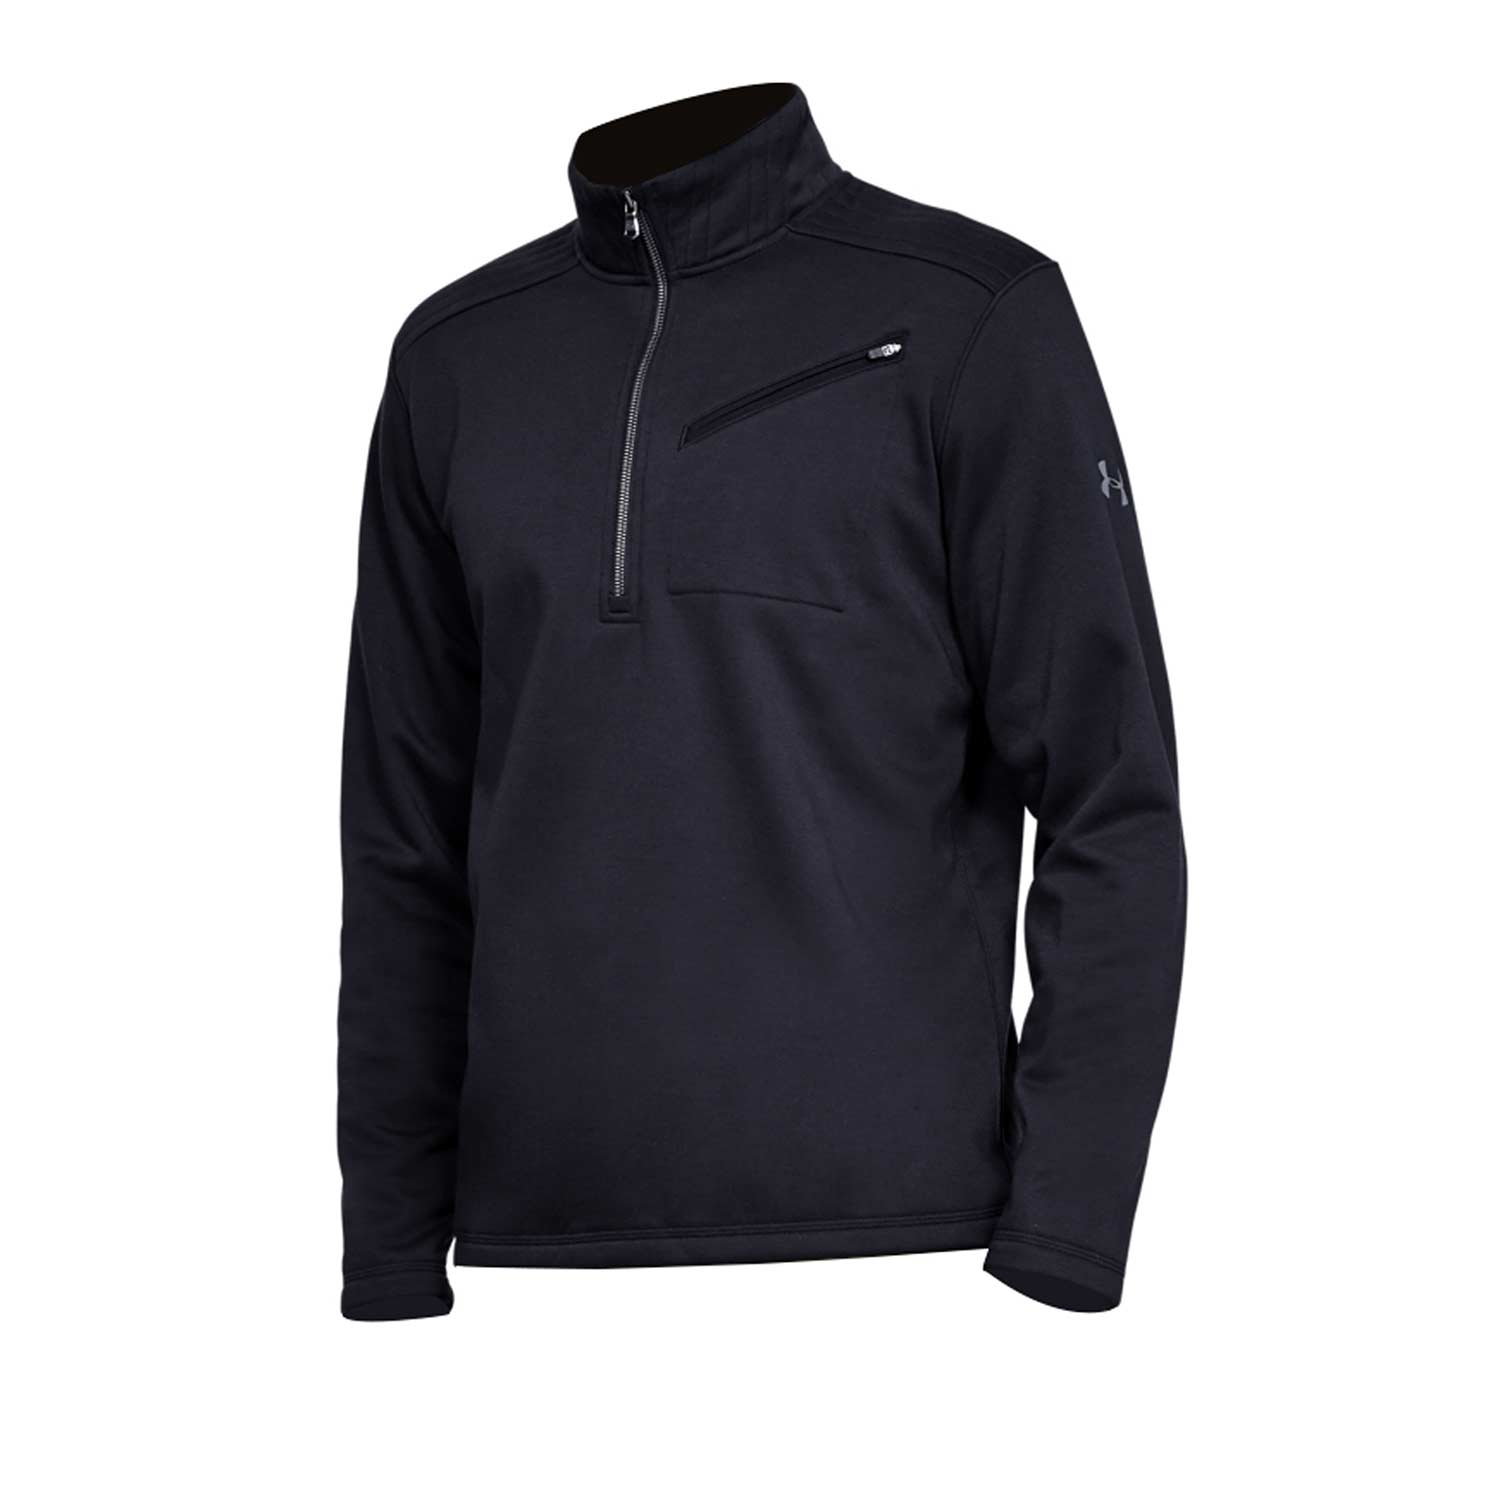 Under Armour Tac All Purpose ½ Zip Shirt